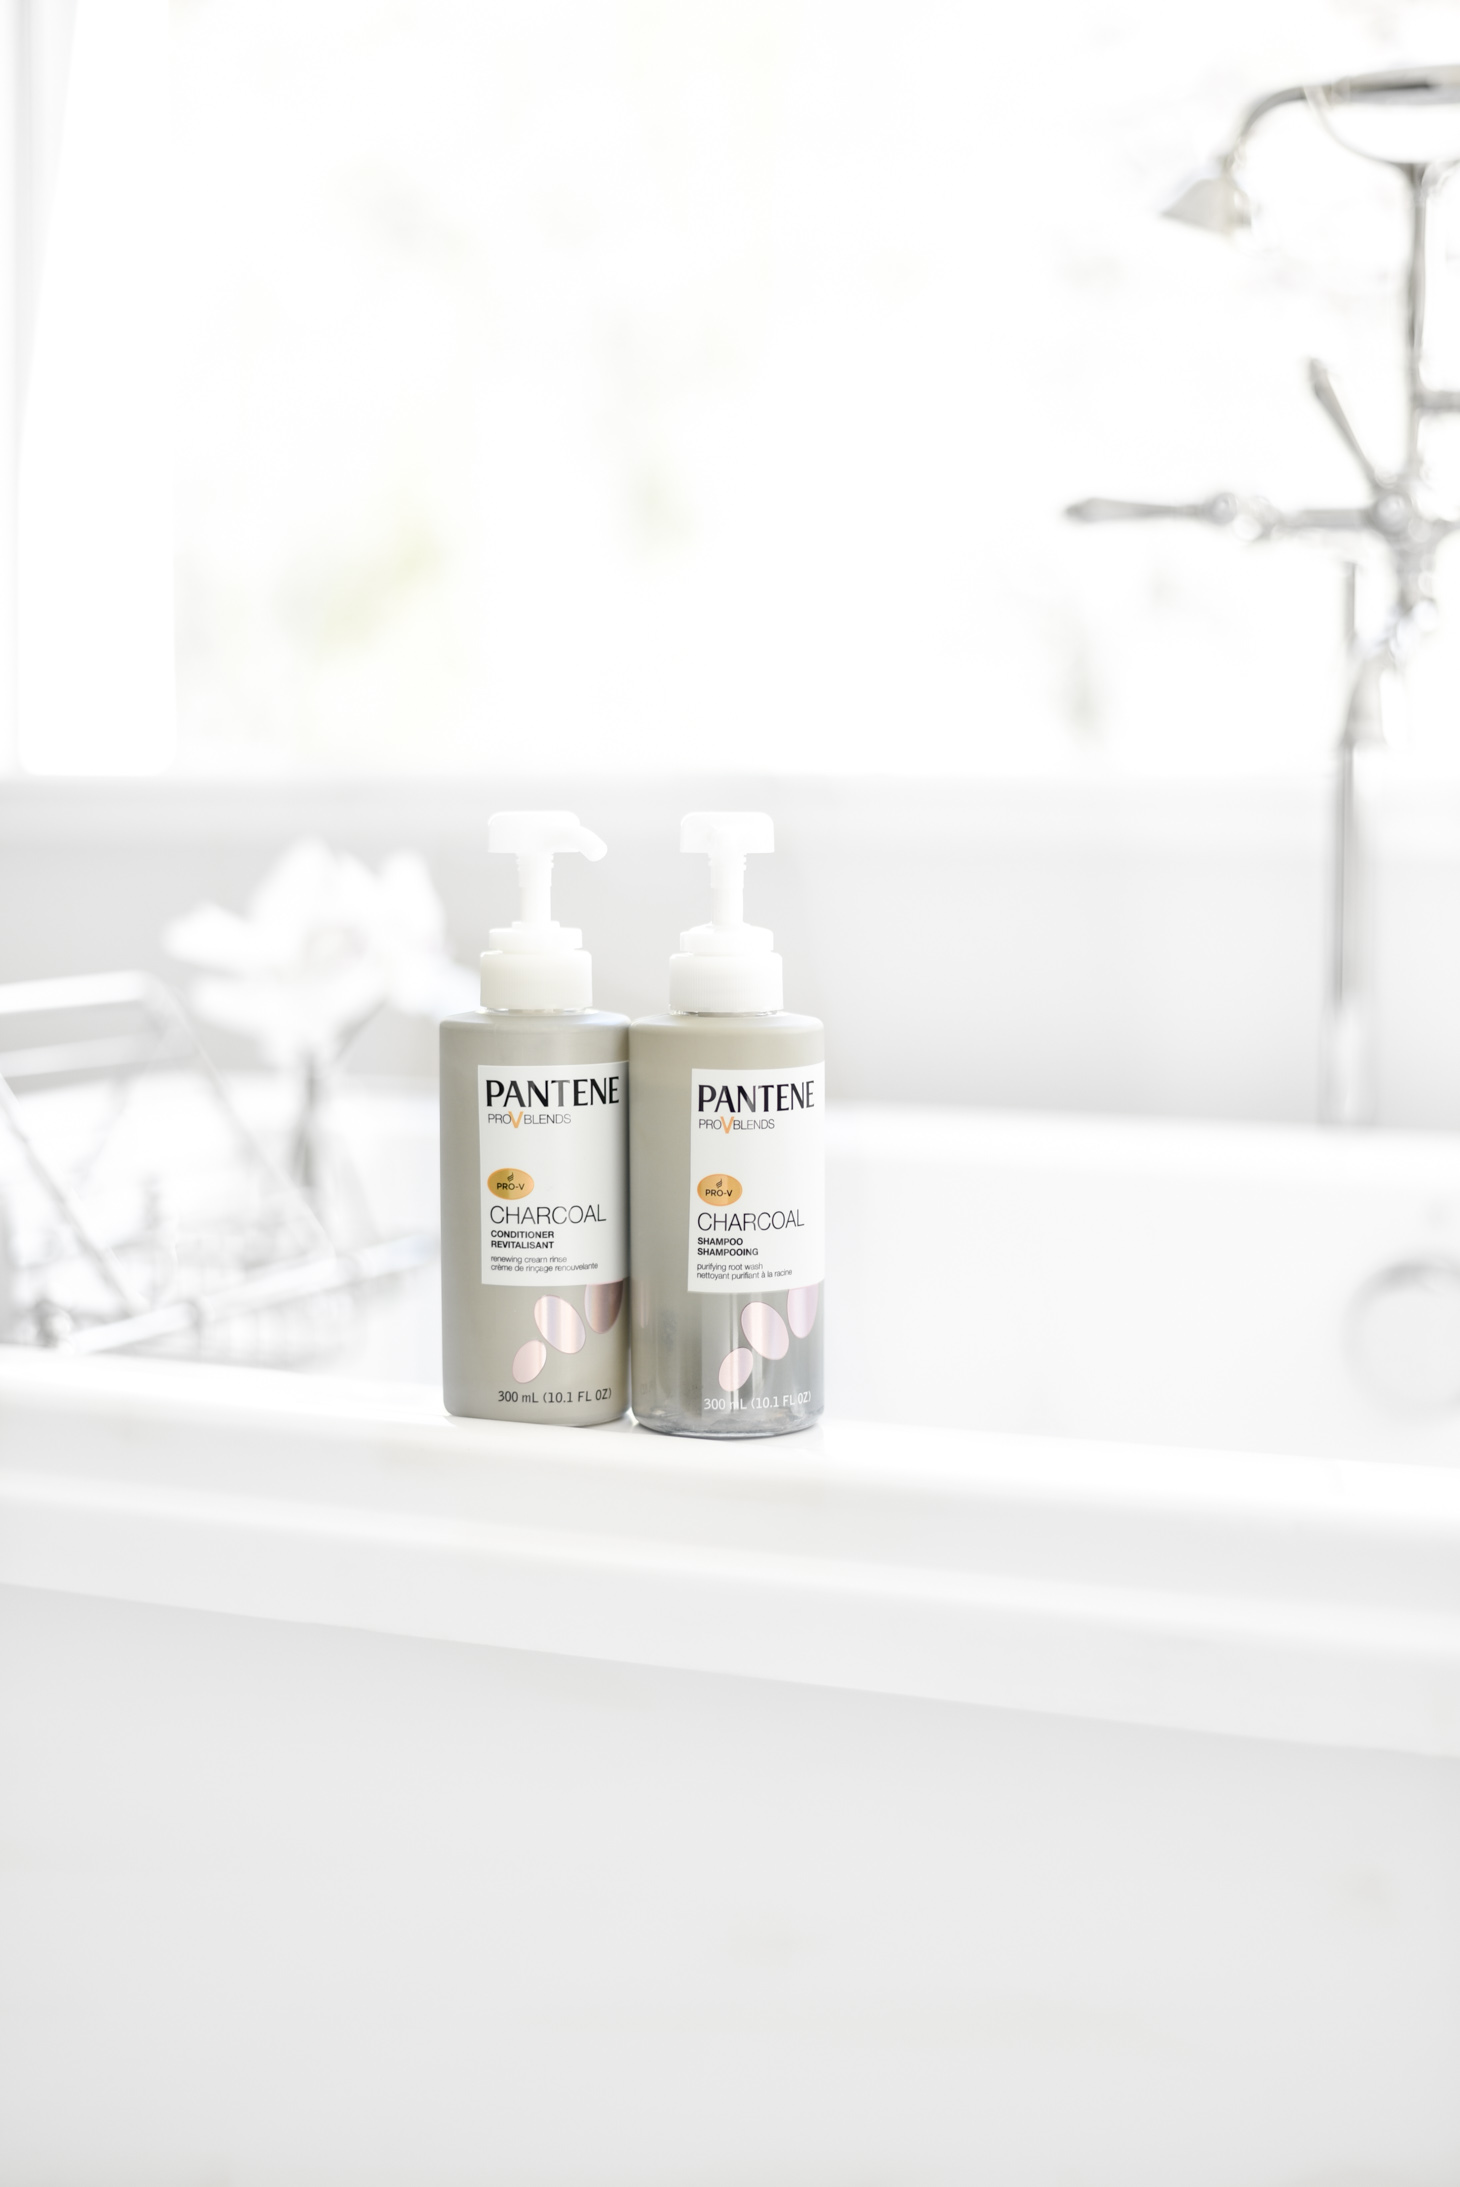 Erin Elizabeth of Wink and a Twirl shares the Pantene Charcoal Shampoo and Conditioner